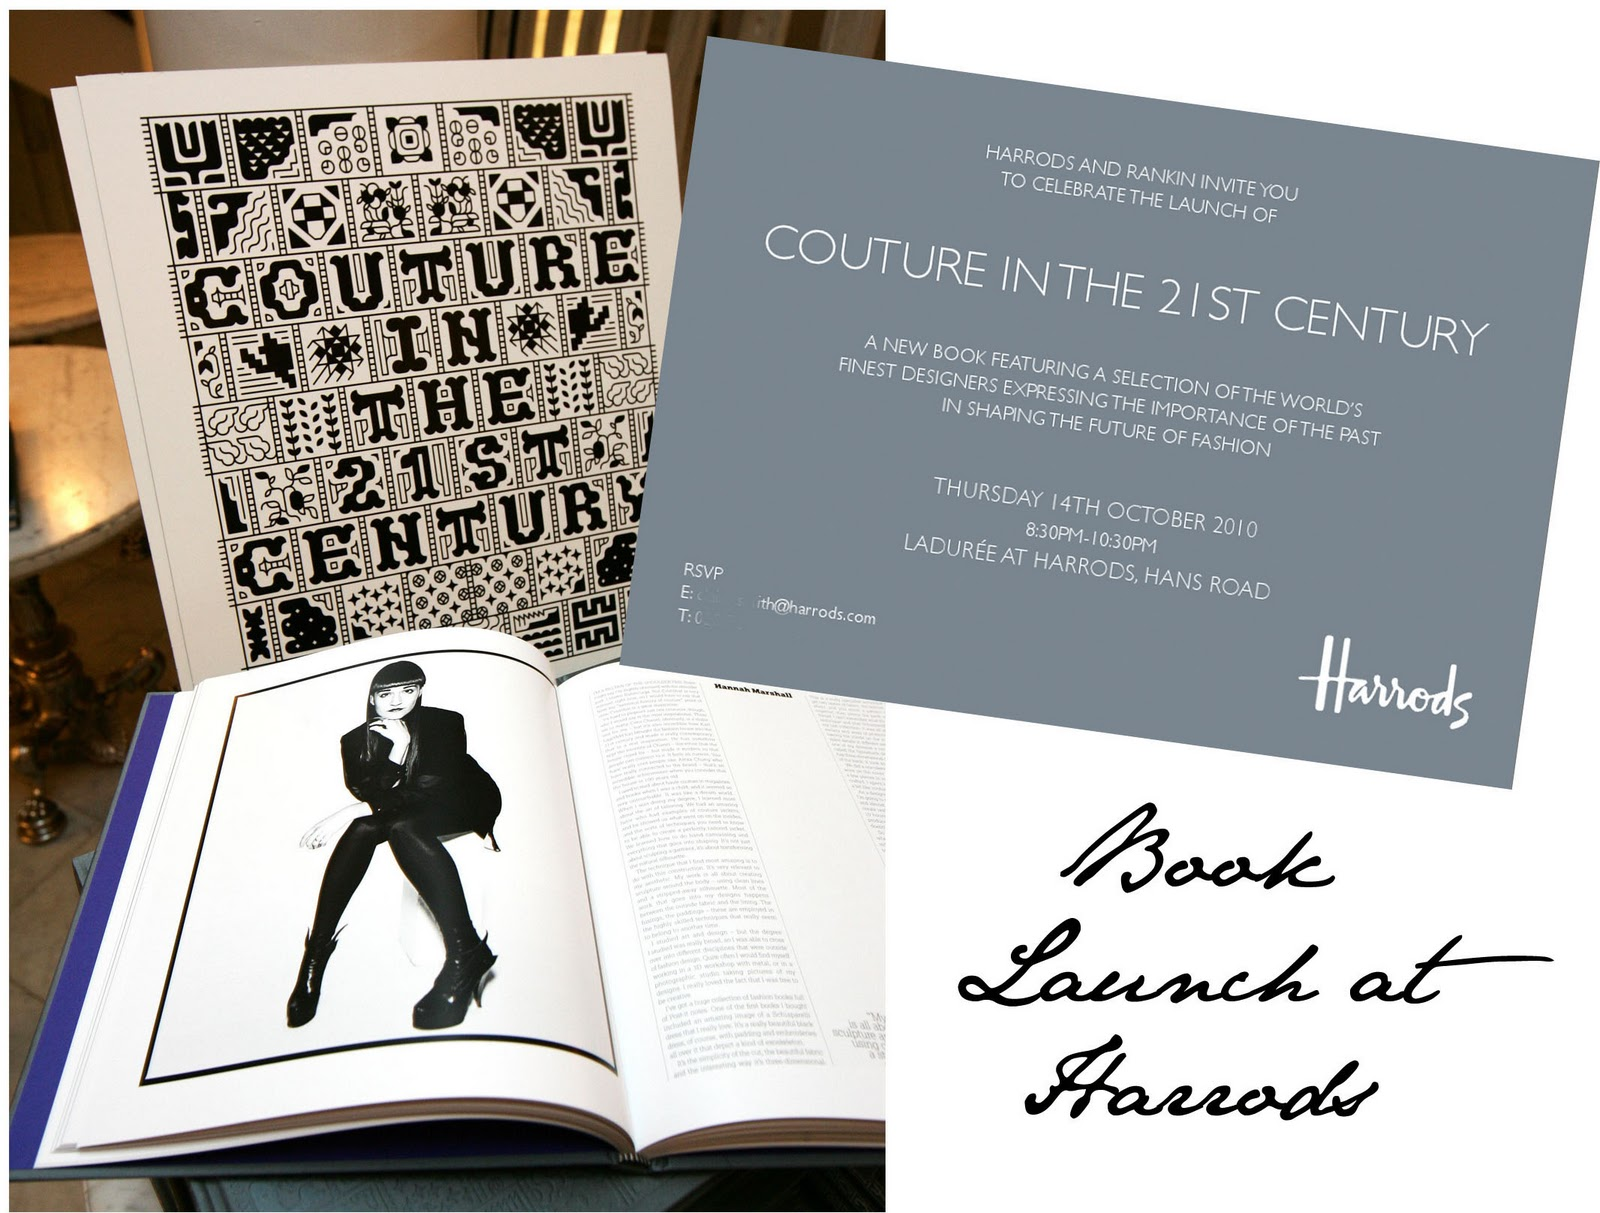 Explores harrods couture in the 21st century pictures